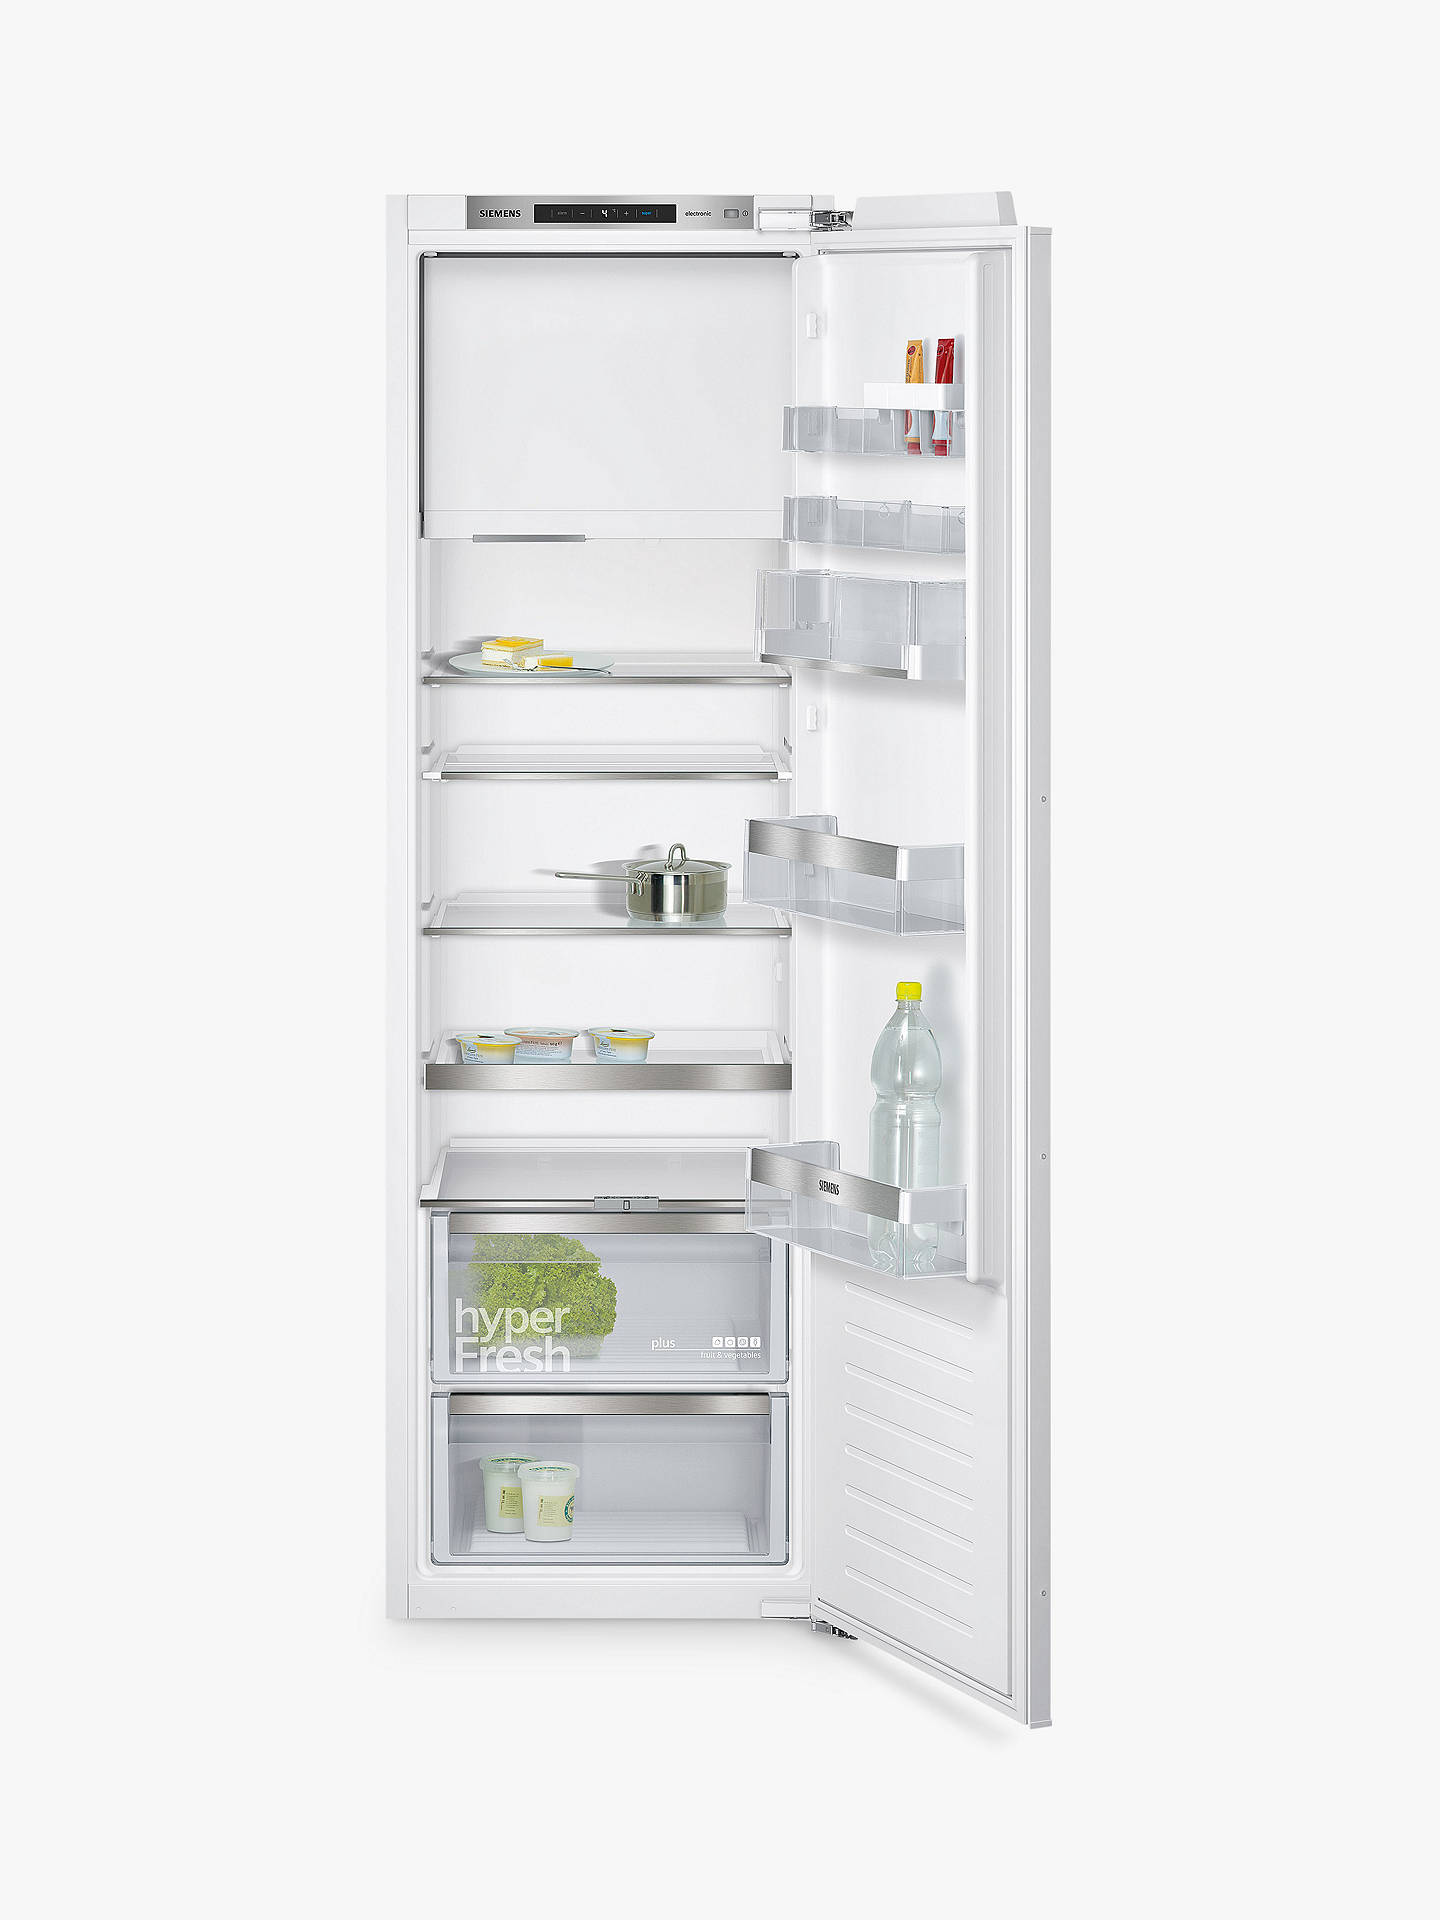 Buy Siemens KI82LAF30 Integrated Fridge with Freezer Compartment, A++ Energy Rating, 56cm Wide, White Online at johnlewis.com